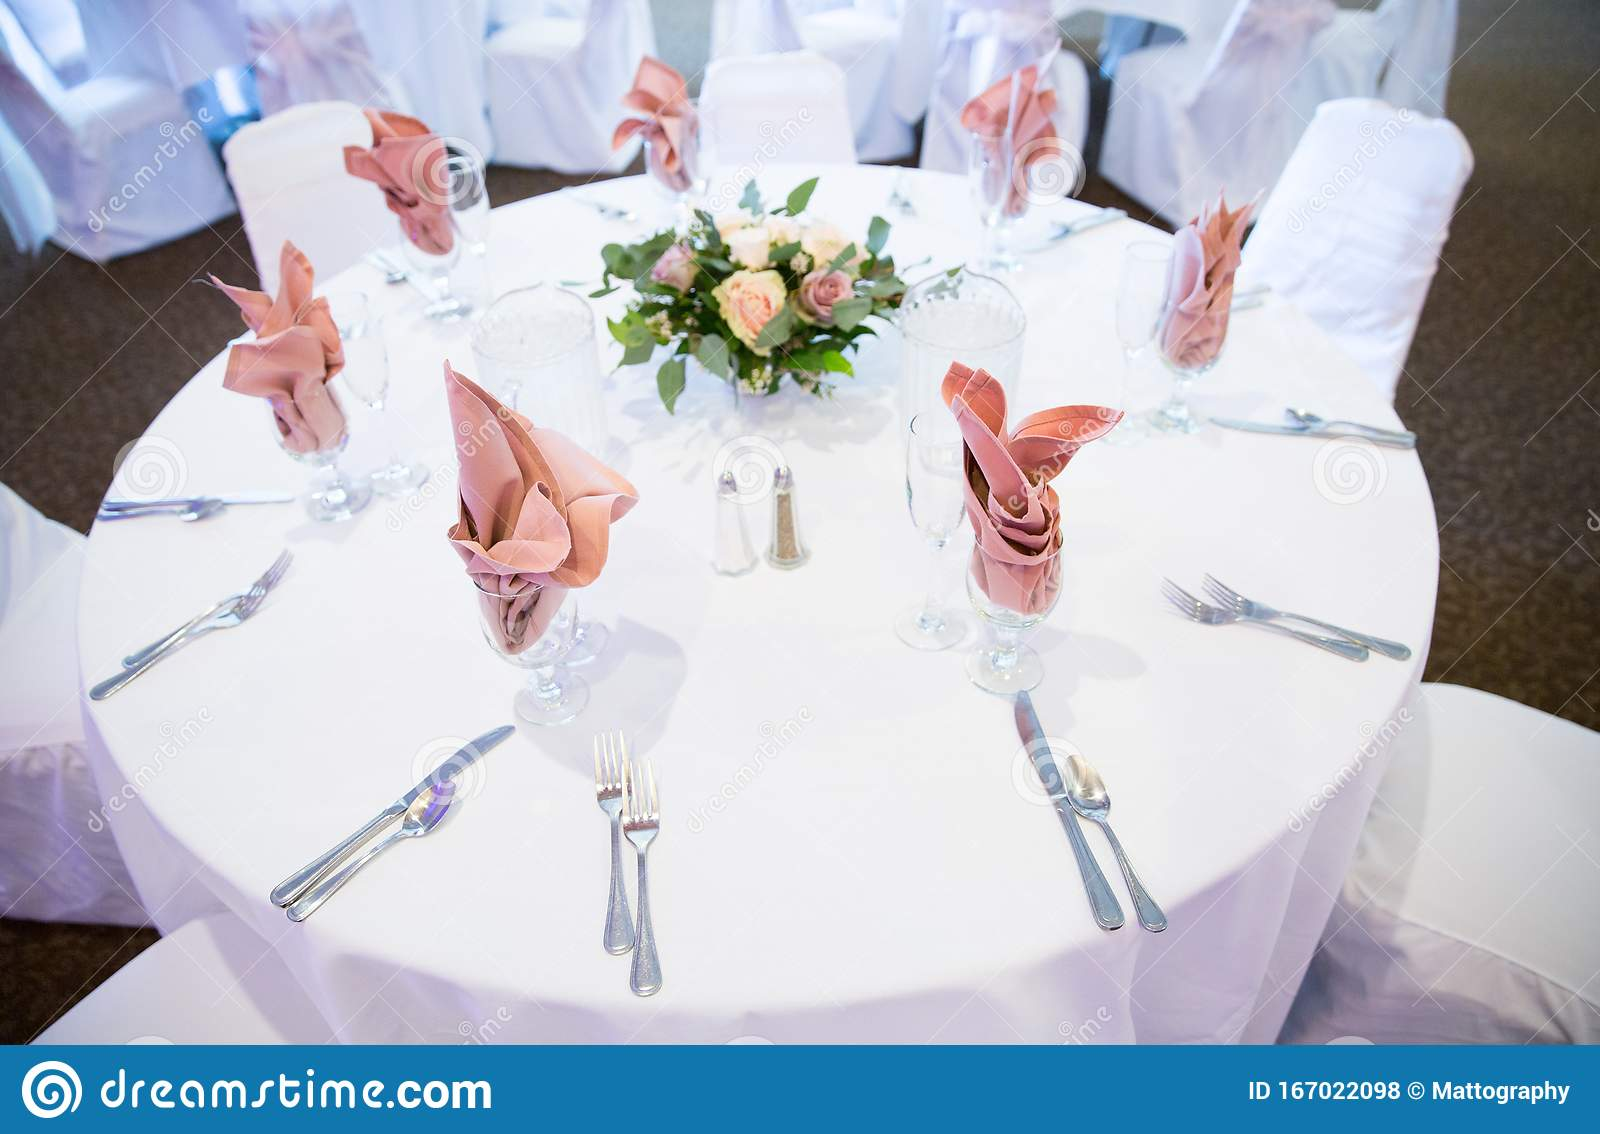 Pink Napkins And White Linens Stock Photo Image Of Interior Circular 167022098